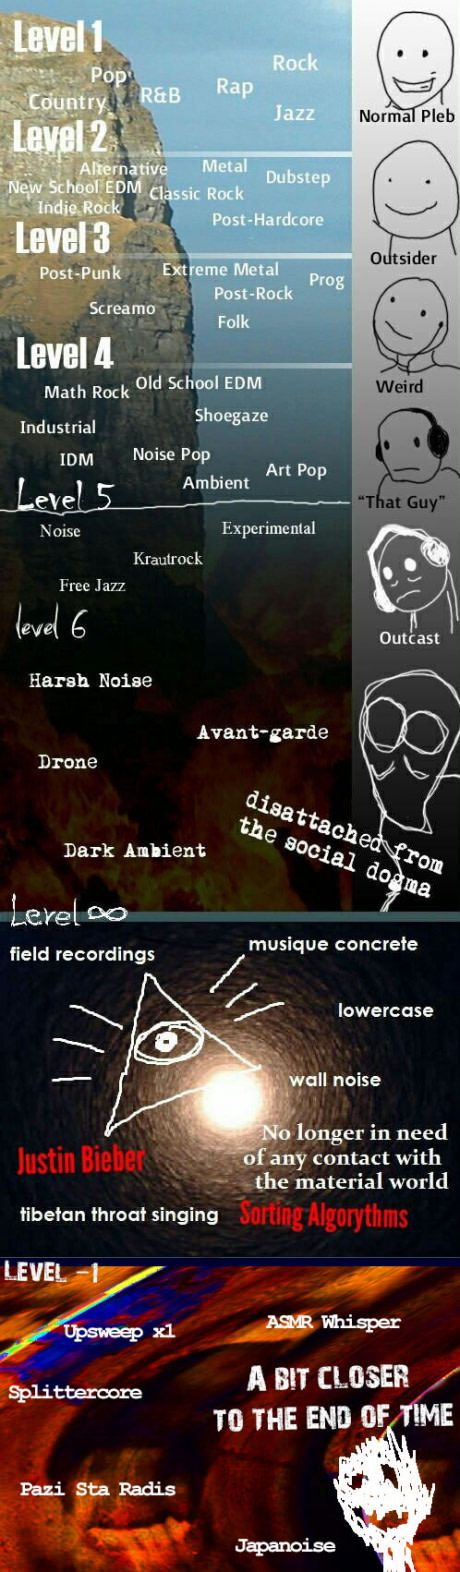 Levels of Music 3.0